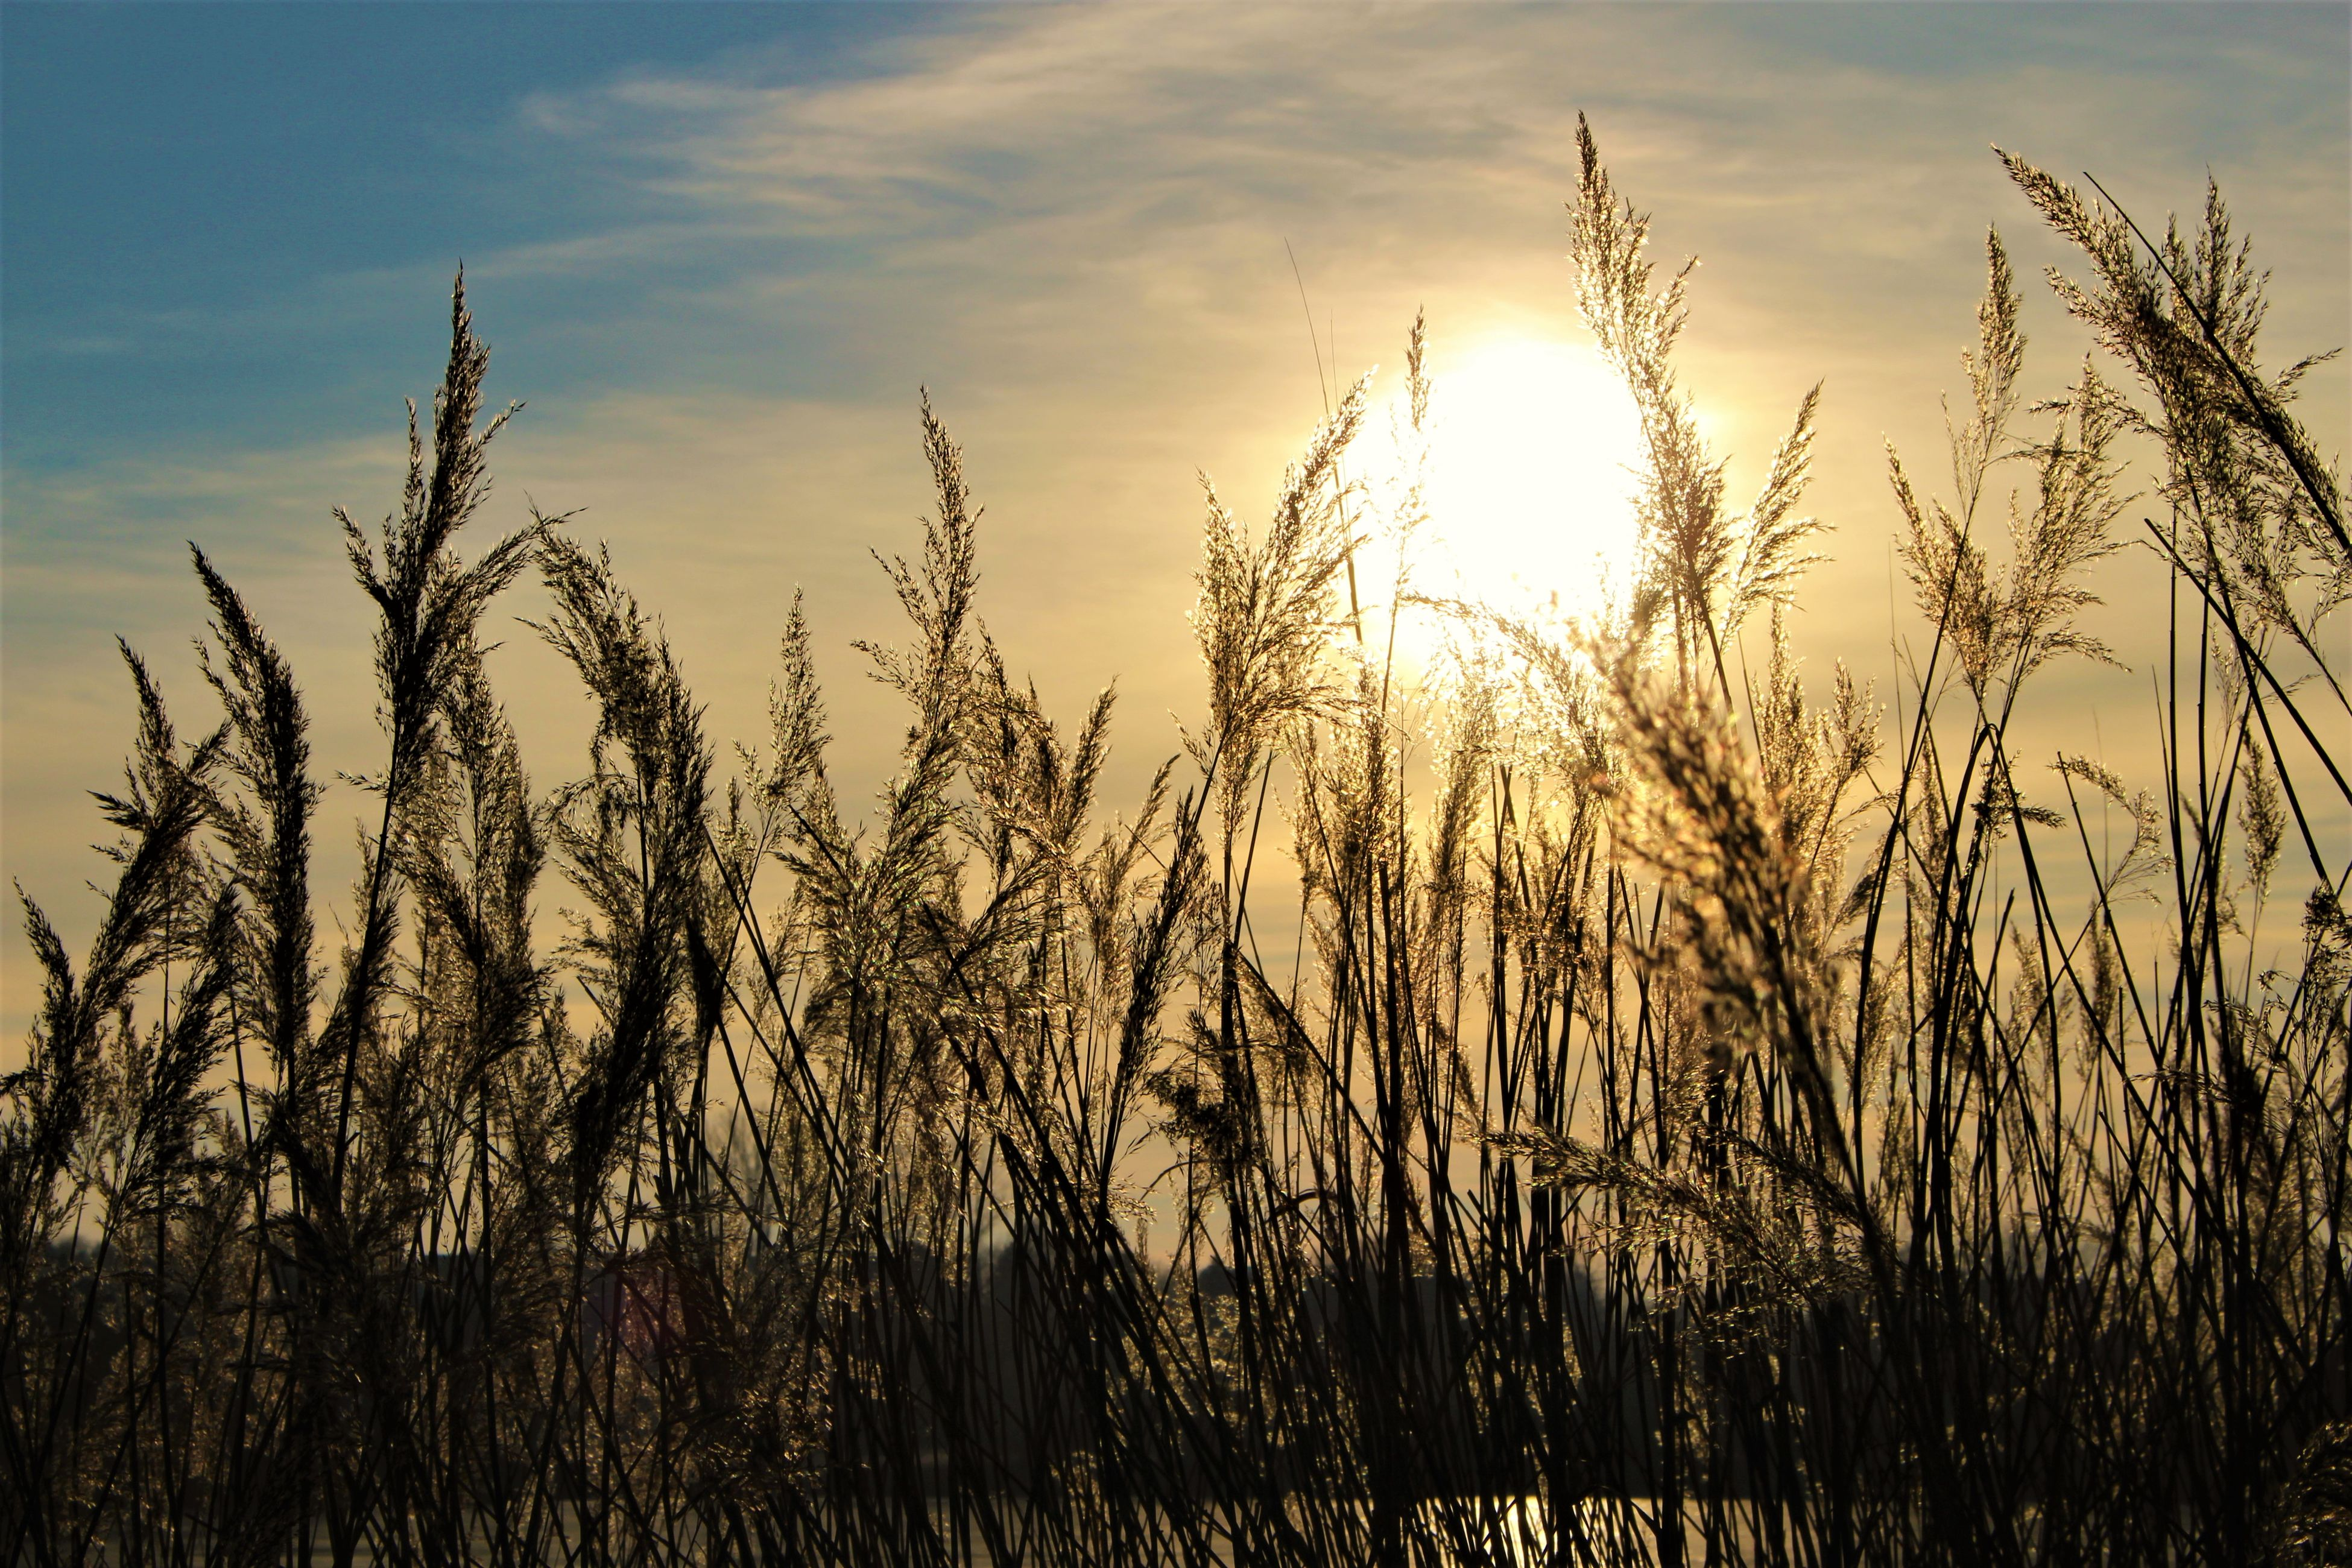 sunset, nature, rural scene, growth, plant, silhouette, cereal plant, landscape, sky, beauty in nature, agriculture, no people, outdoors, scenics, tranquil scene, close-up, gold colored, backgrounds, wheat, day